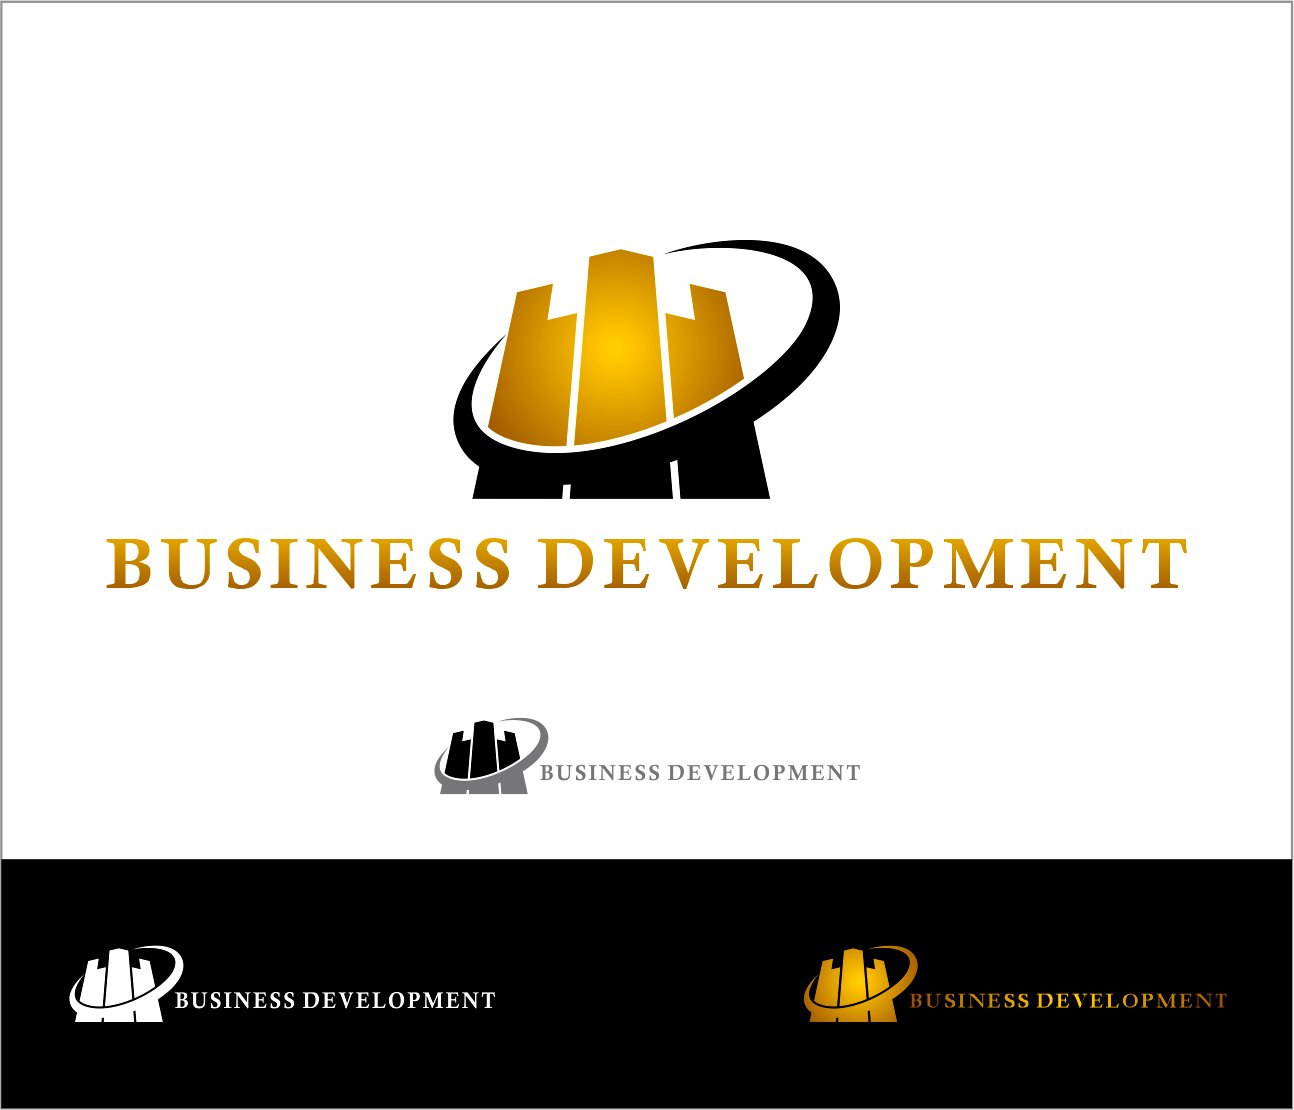 Logo Design by Armada Jamaluddin - Entry No. 82 in the Logo Design Contest MP Business Development Inc. Logo Design.